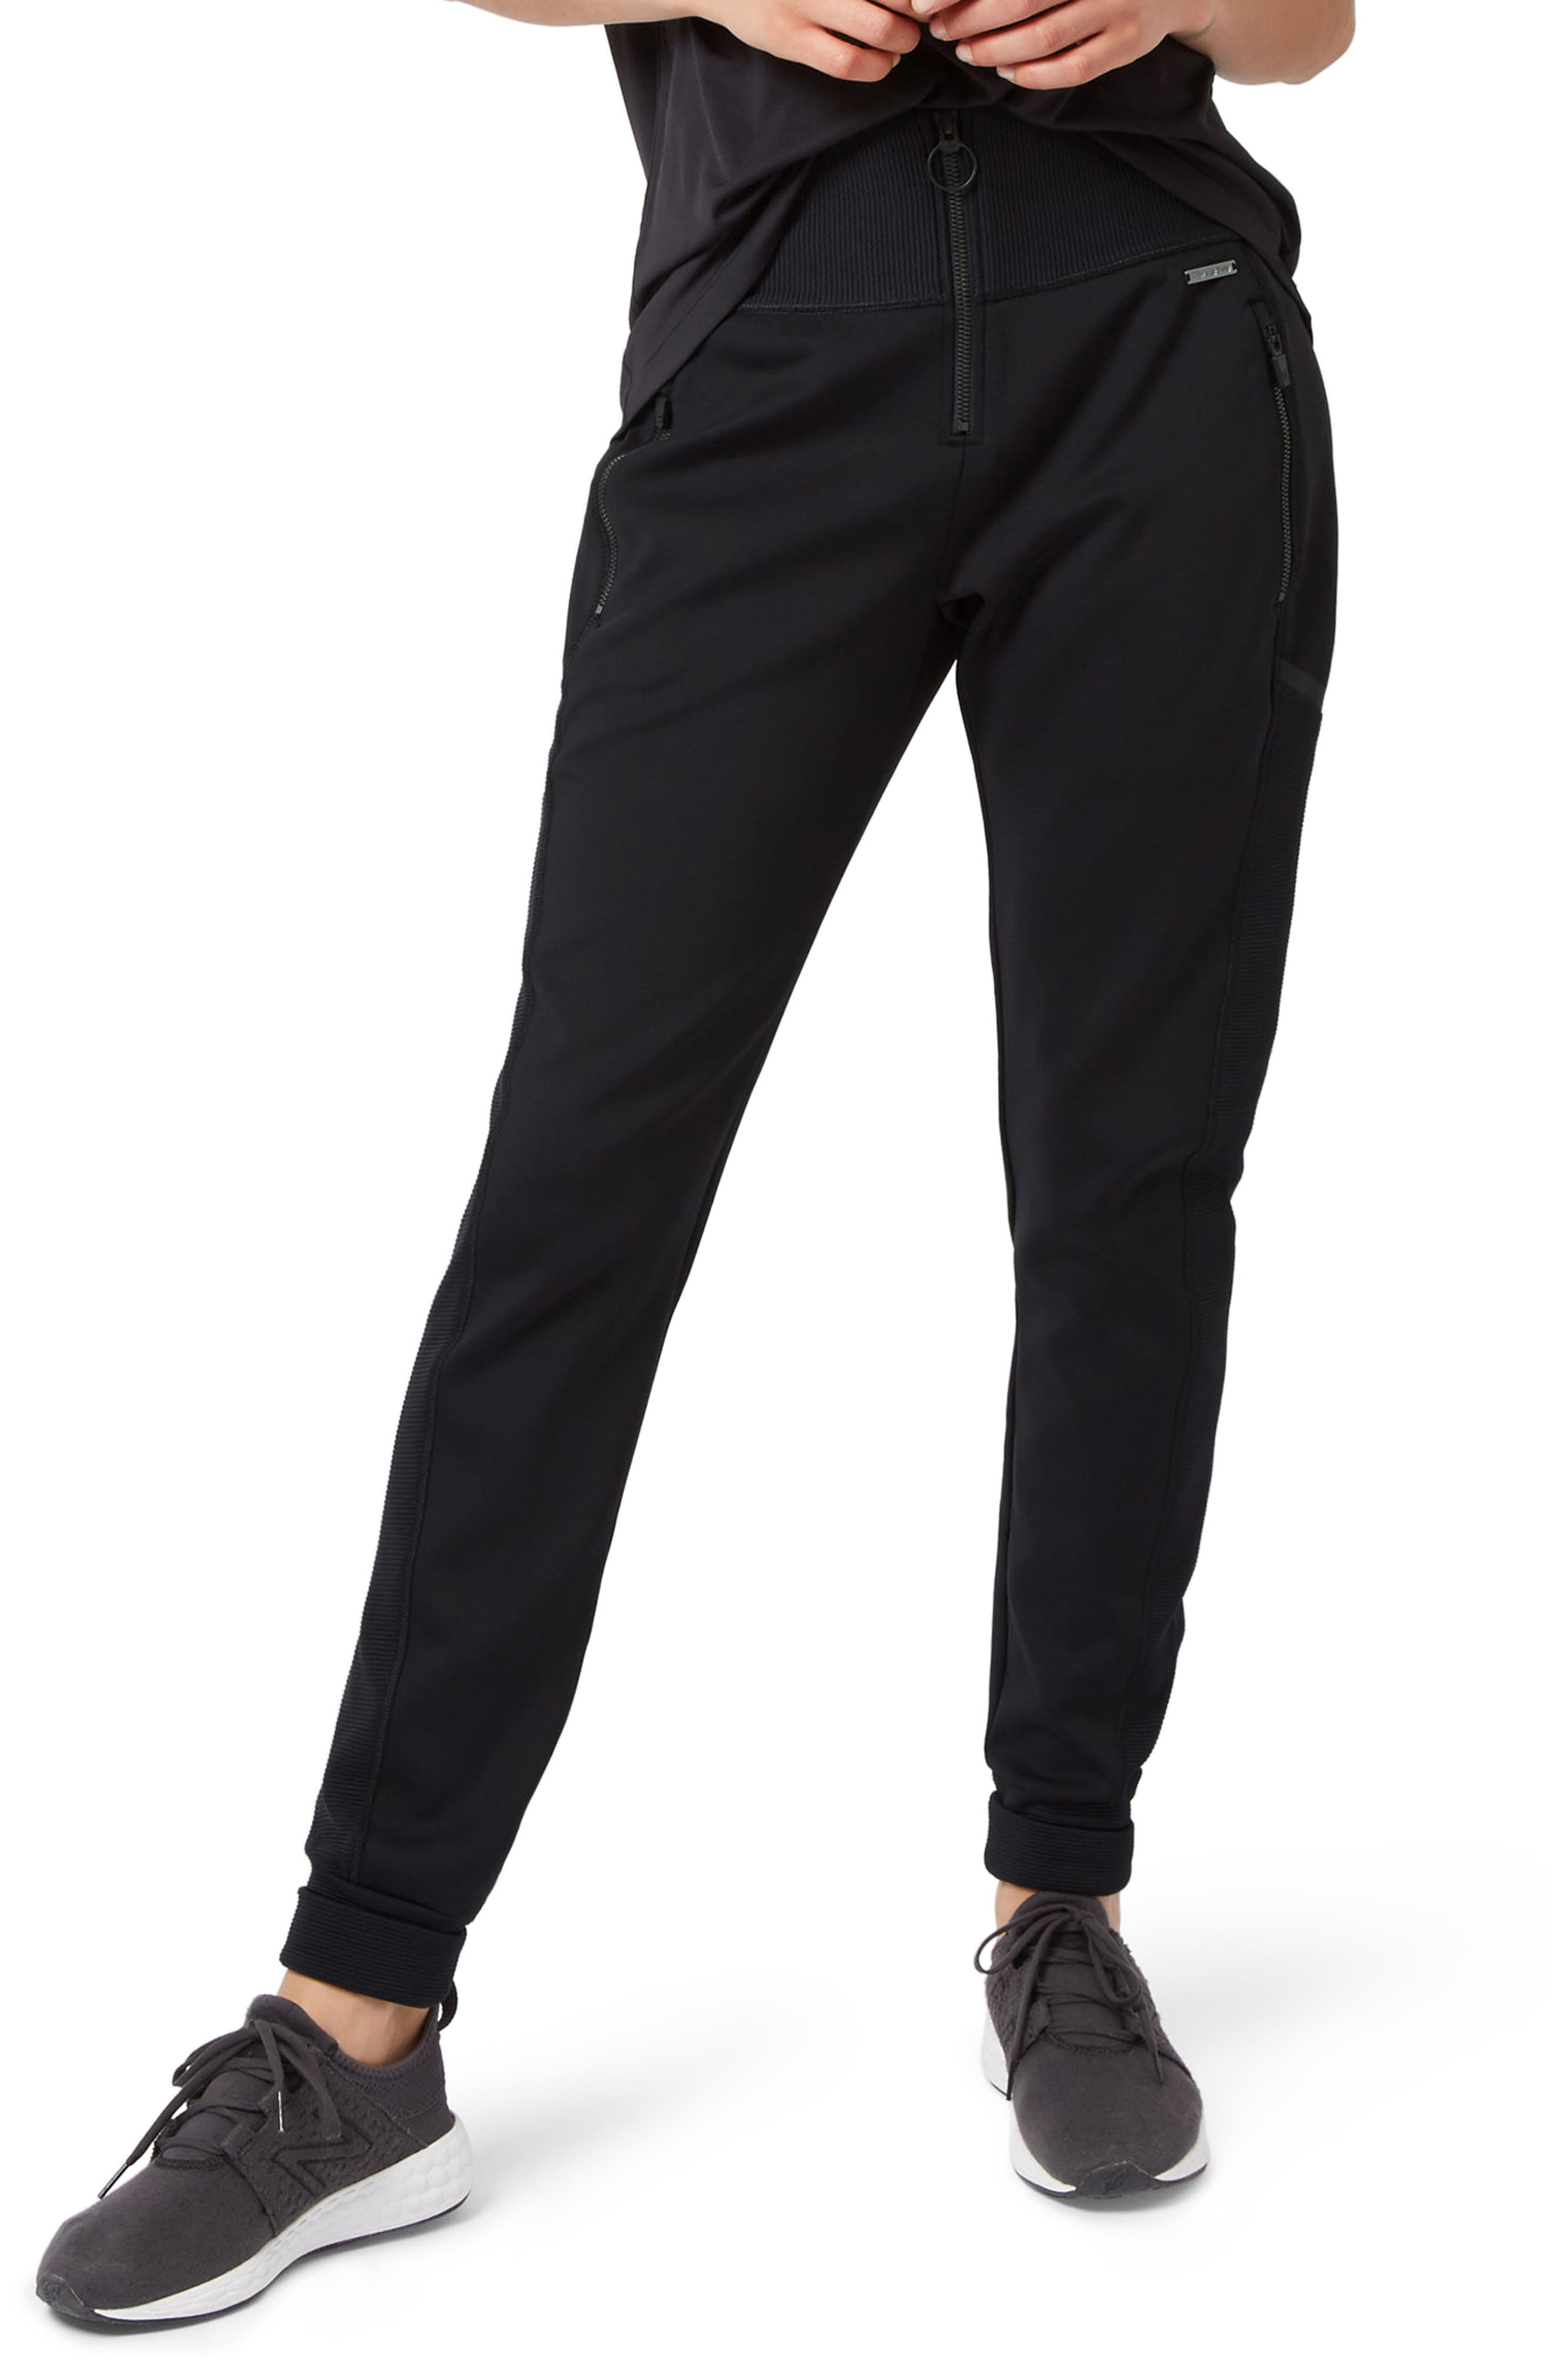 Flex Sweatpants,                         Main,                         color, Black